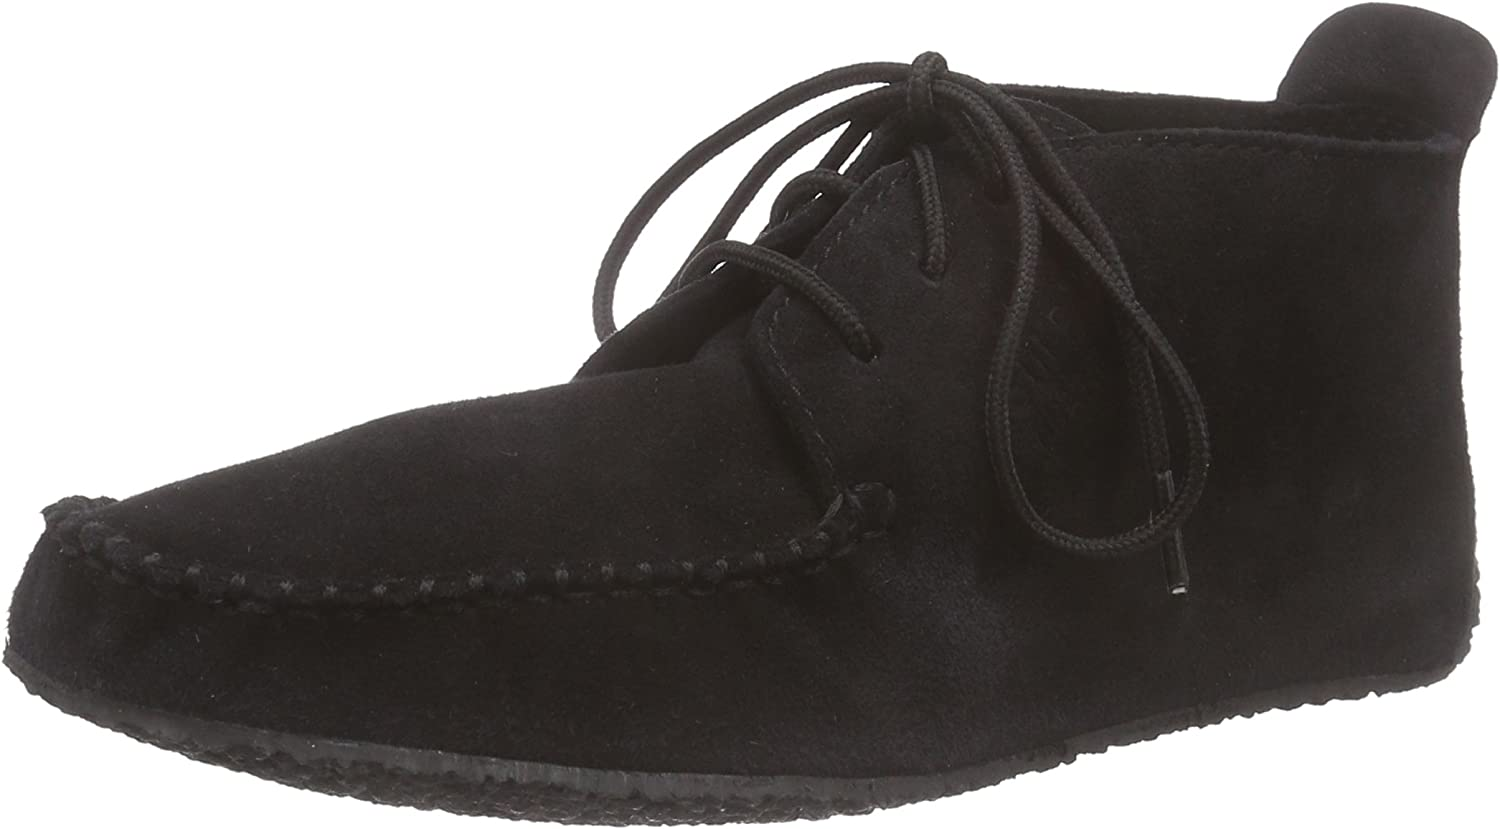 Sole Runner Chenoa, Mocasines Unisex Adulto